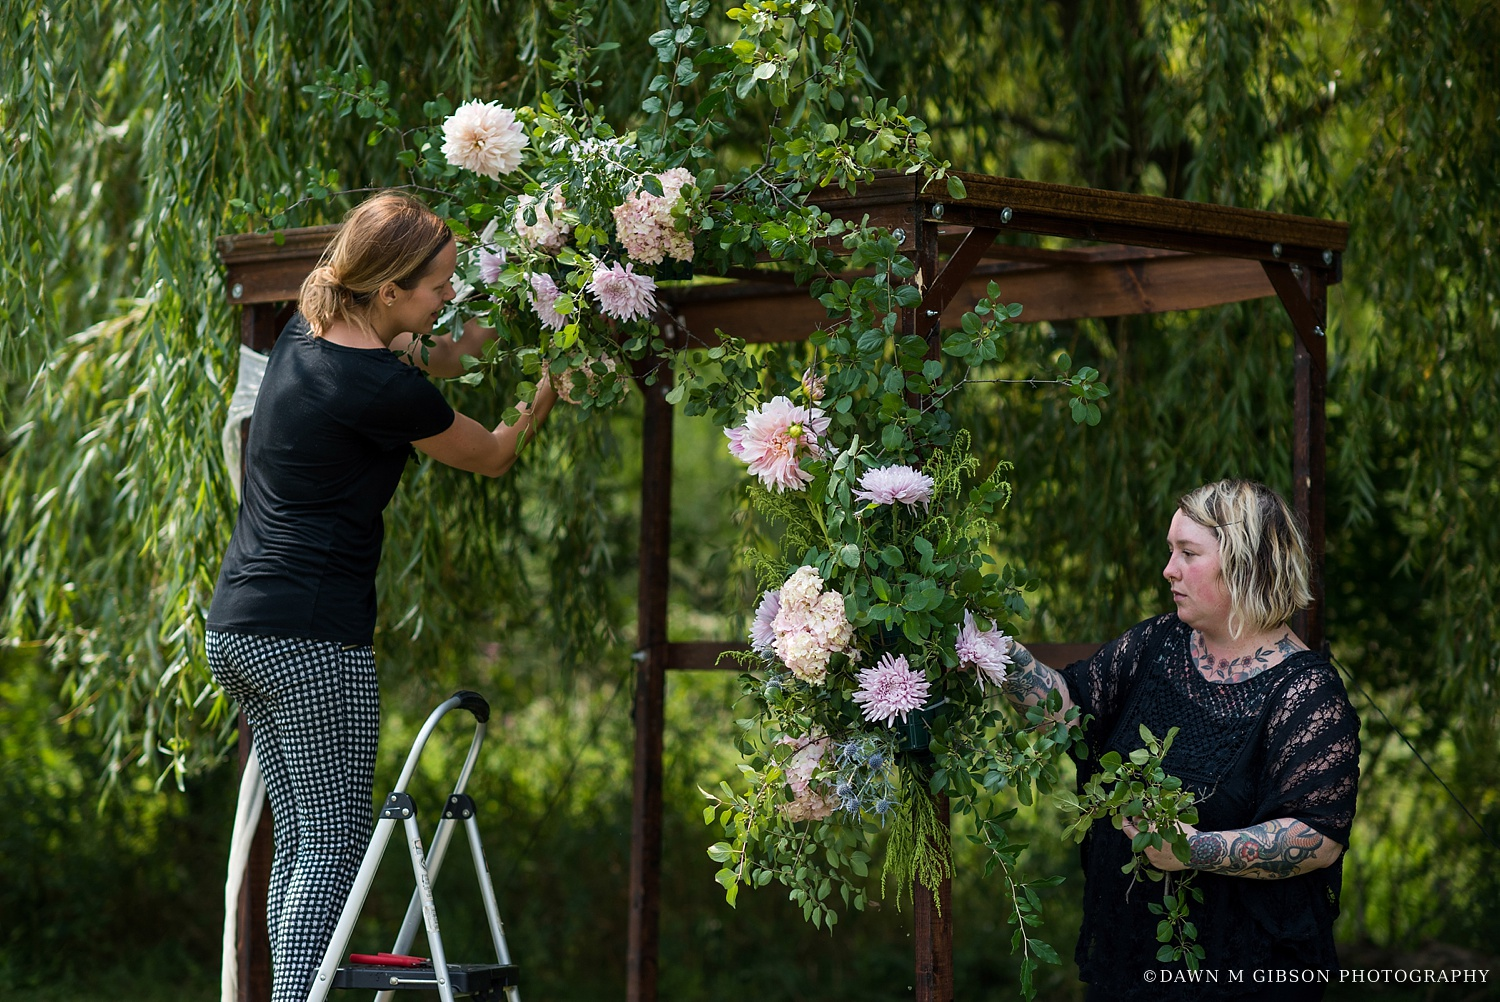 William's Florist Behind-The-Scenes with Dawn M Gibson Photography